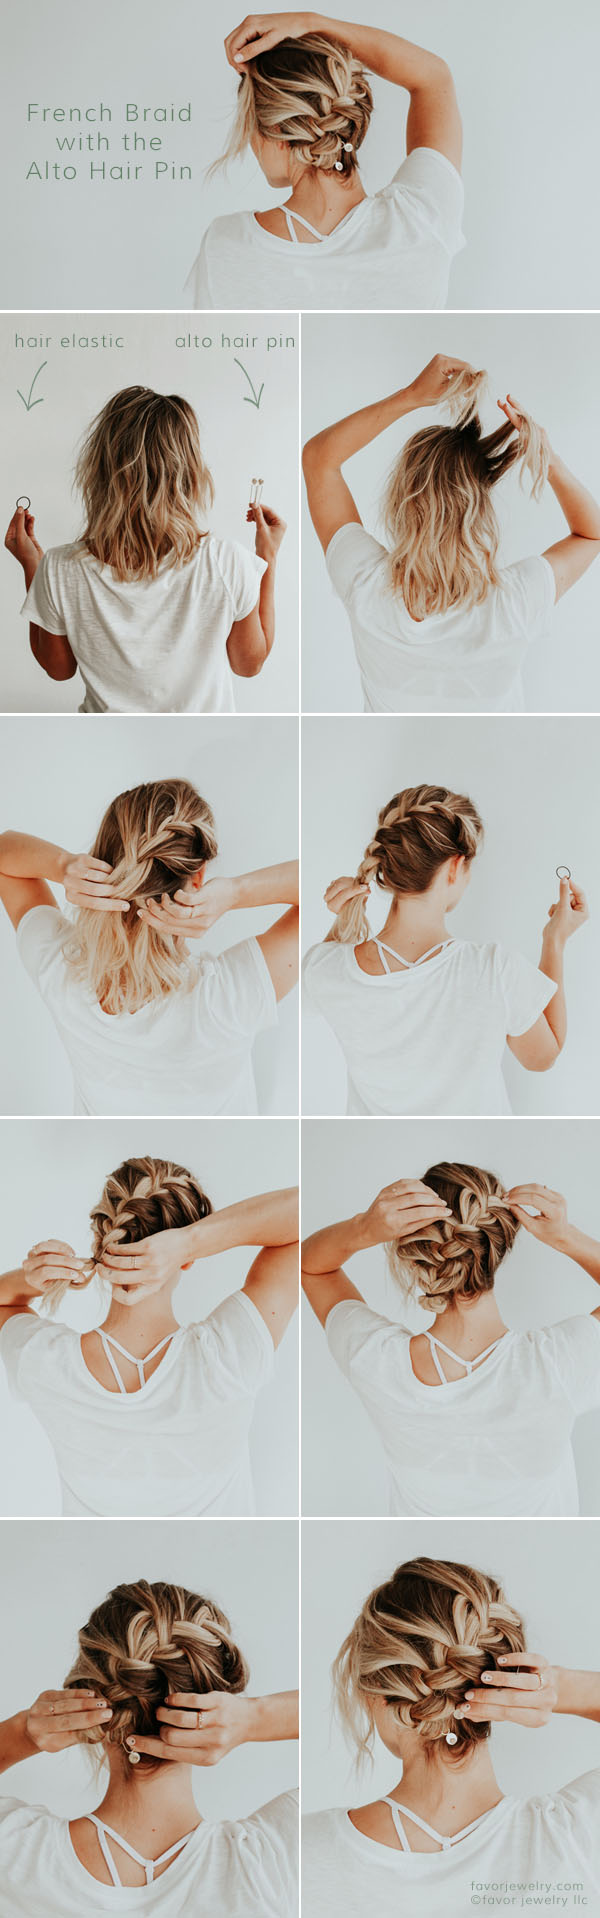 Date Night French Braid Hair Tutorial with Gemstone Hair Pins by Favor Jewelry